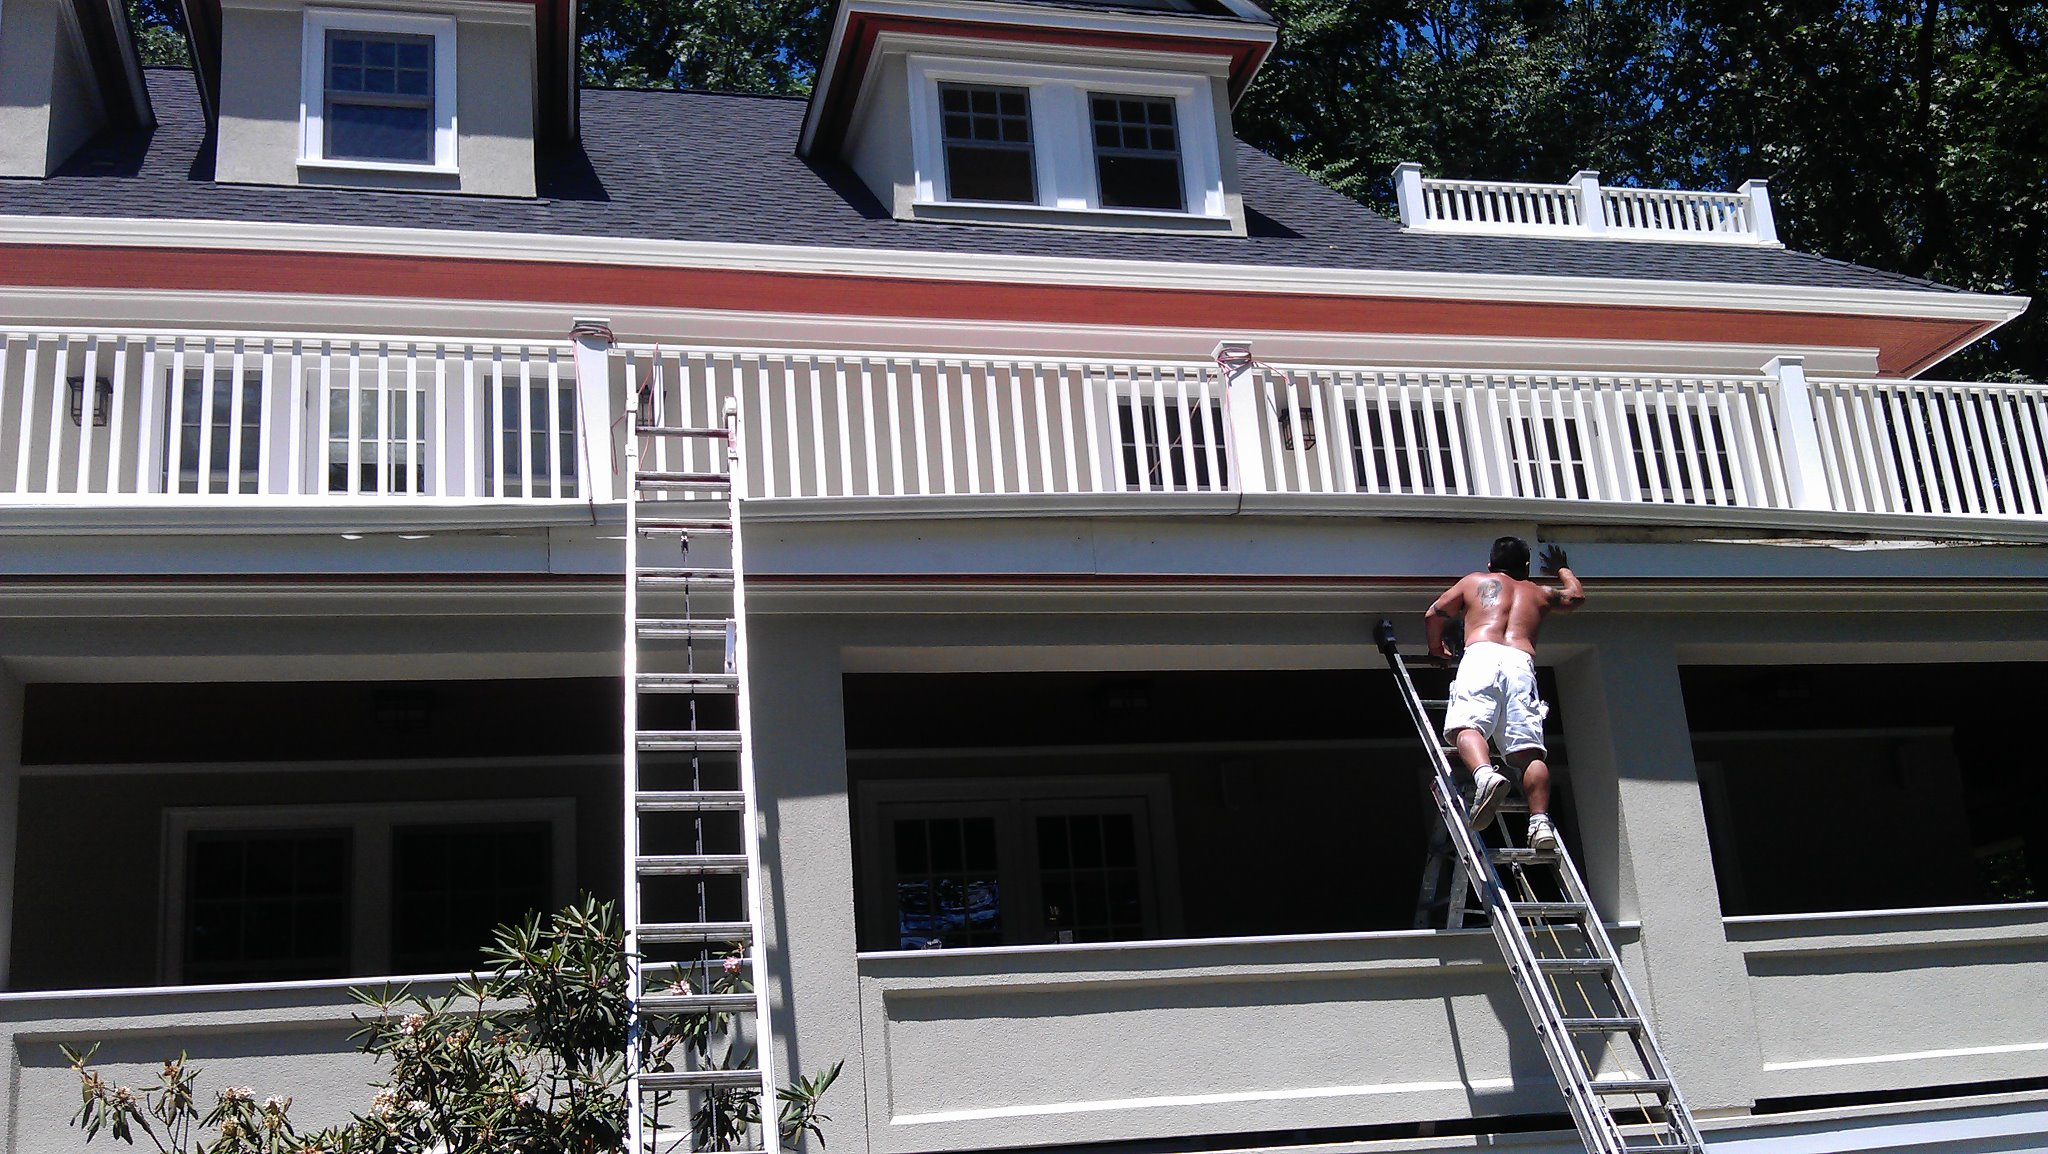 Commercial Painting In Morris County NJ